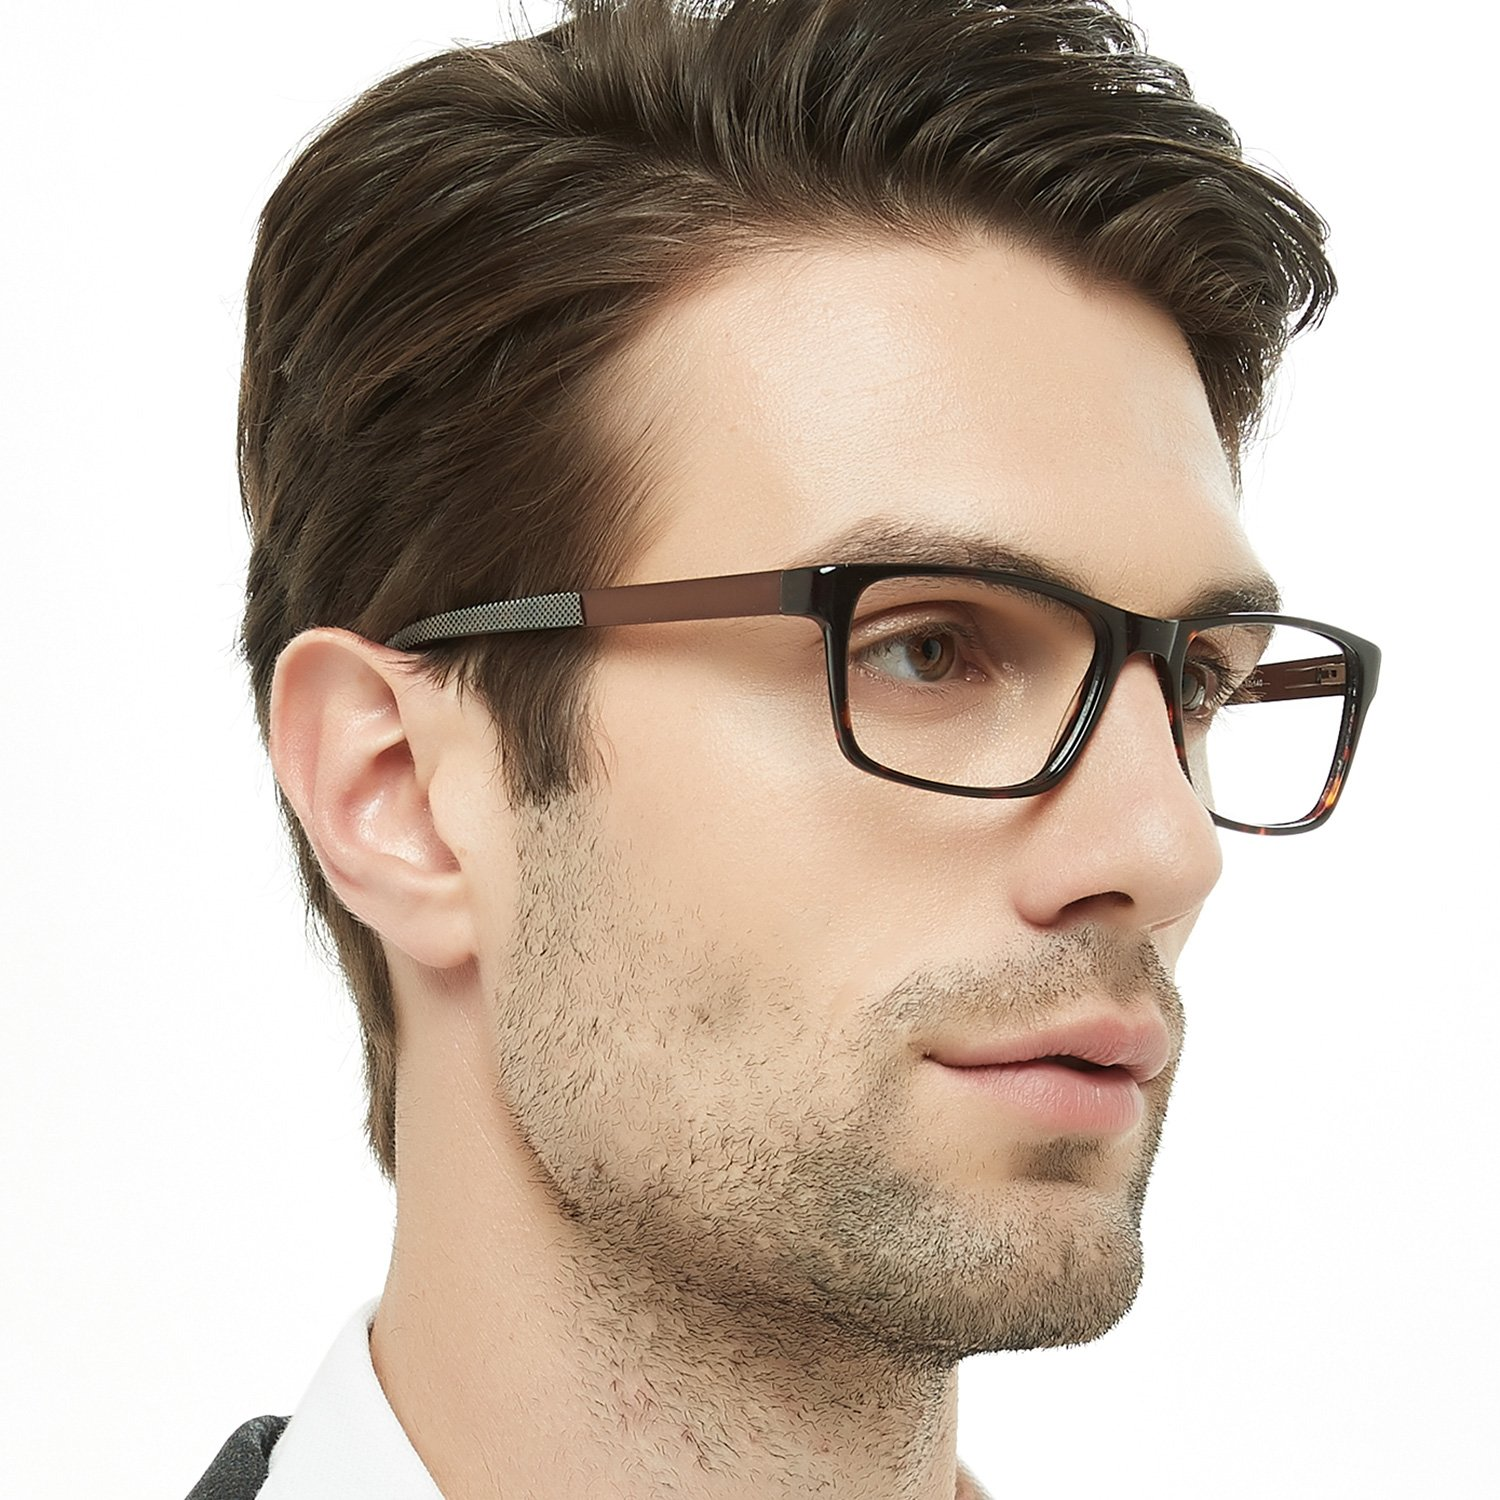 OCCI CHIARI Mens Rectangle Fashion Stylish Acetate Eyewear Frame With Clear Lens 51mm V5-QNG8-BNSU